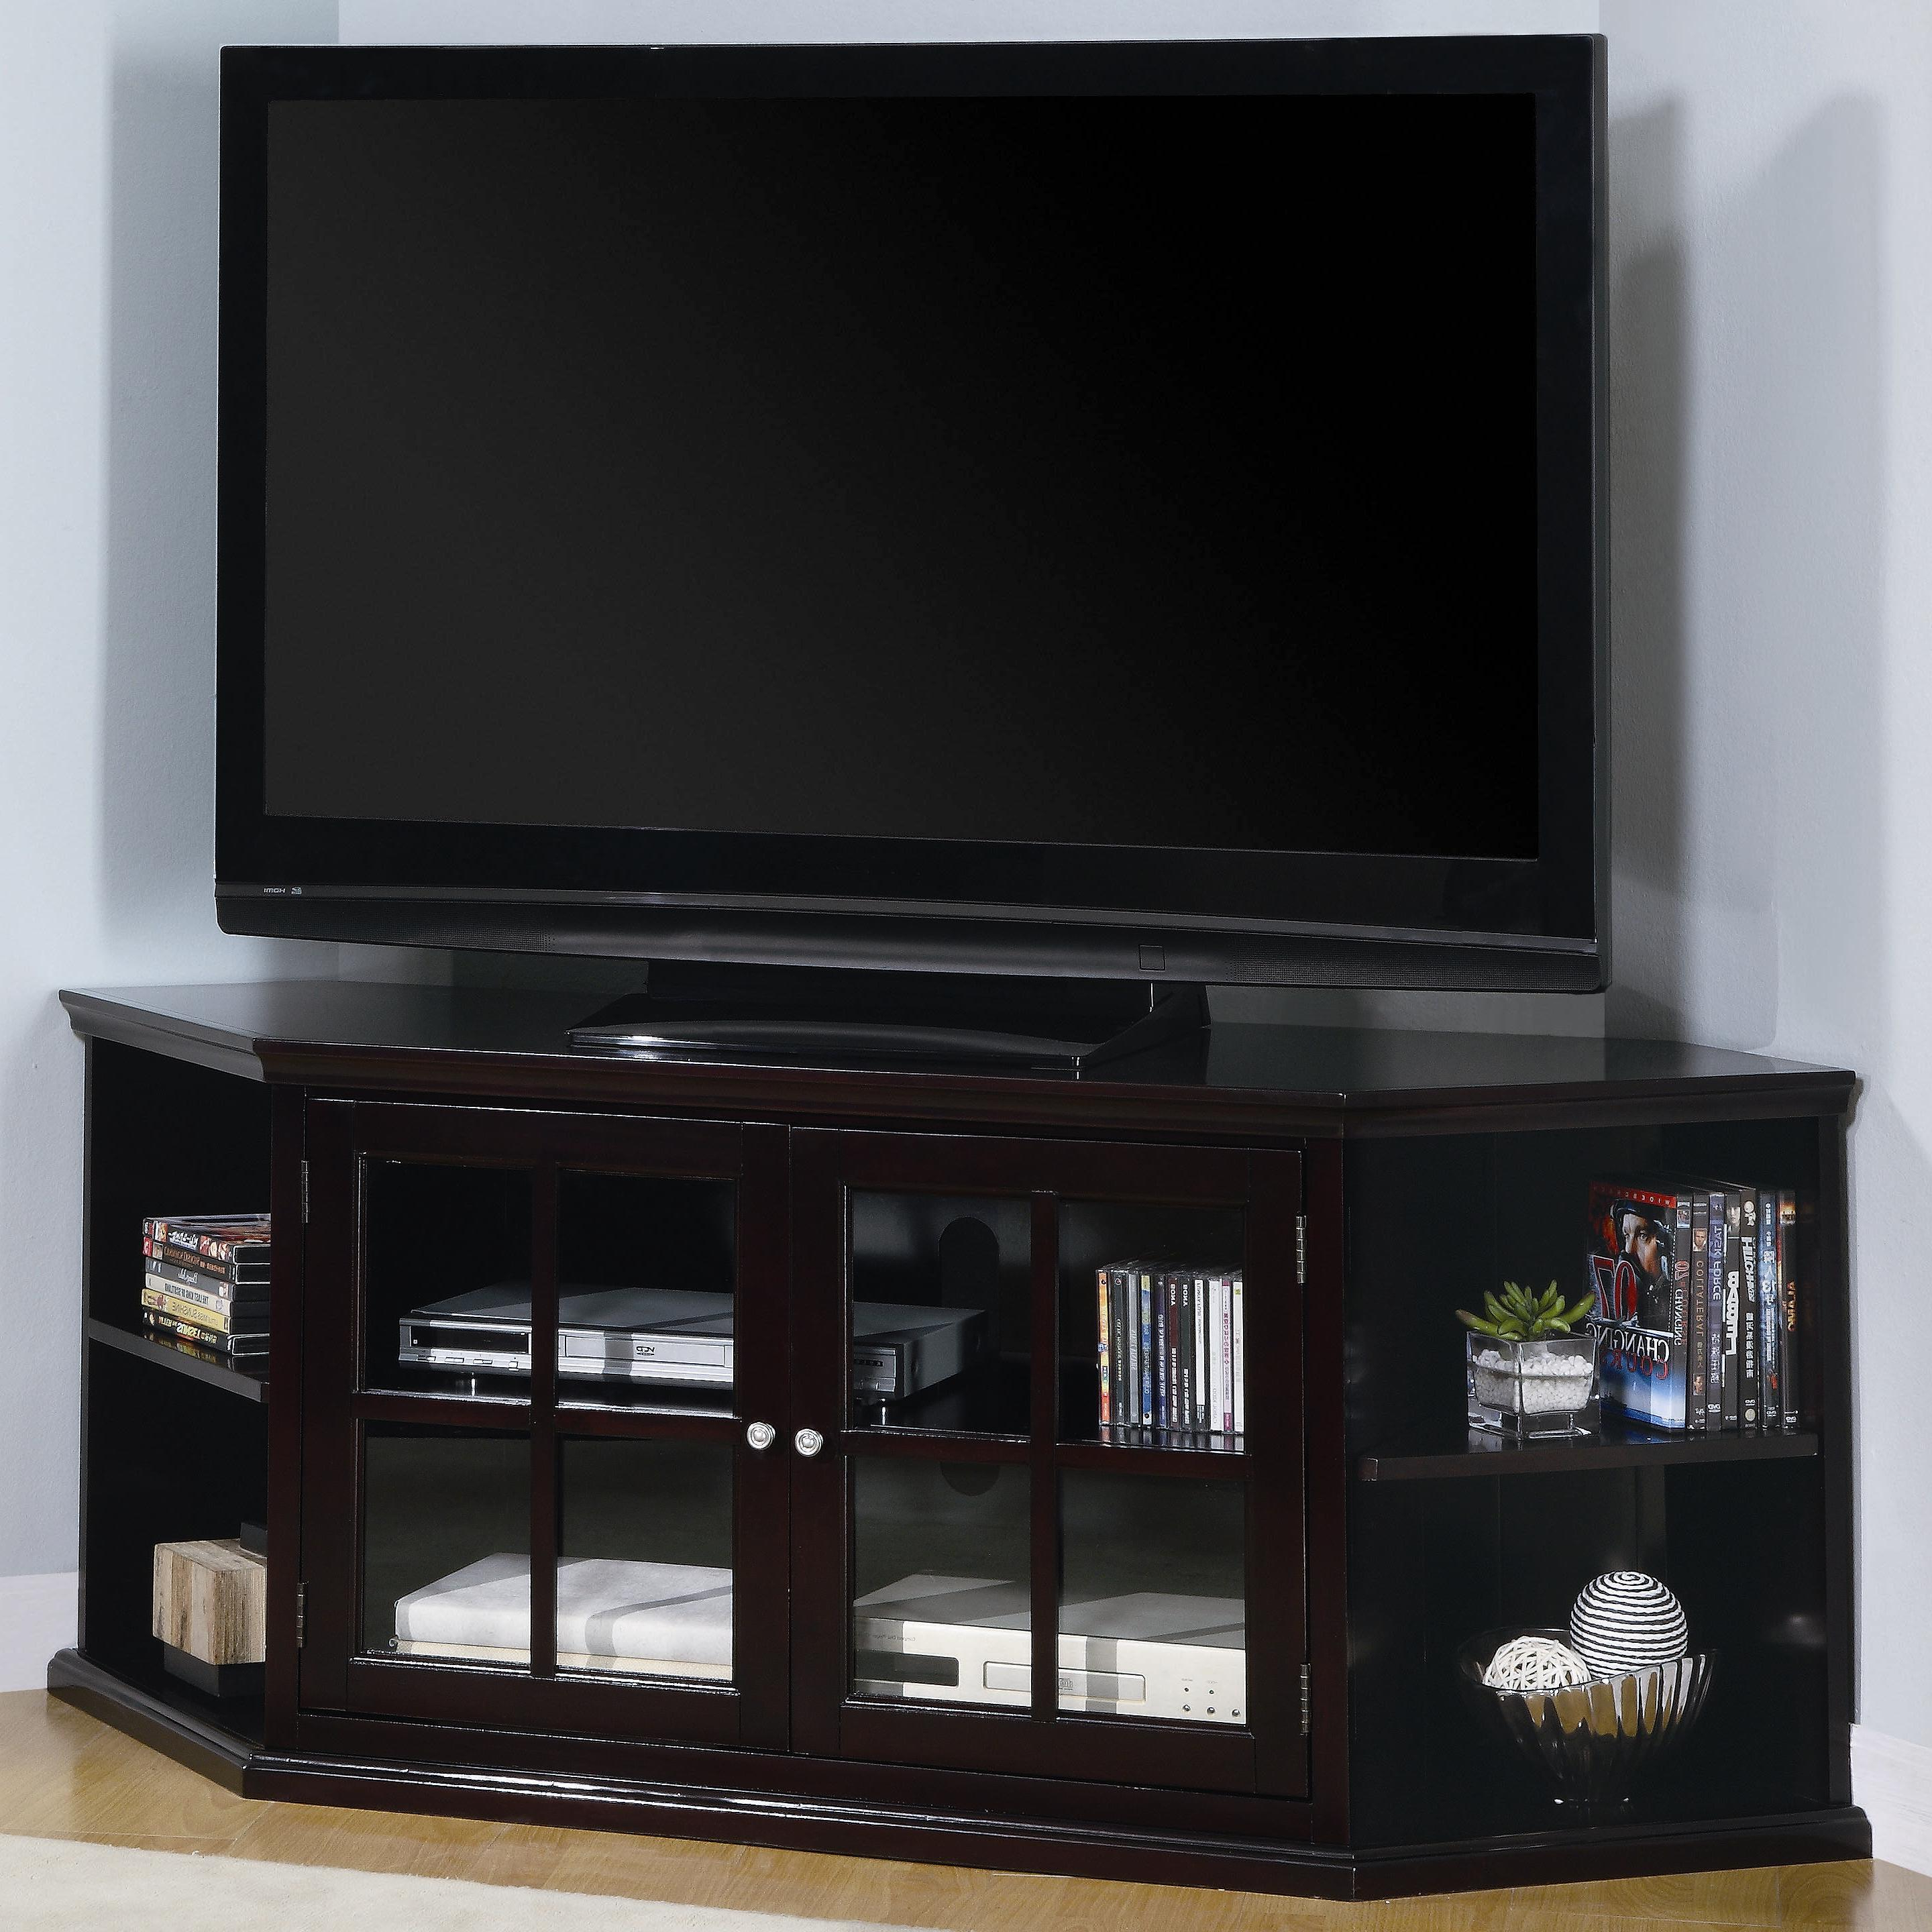 2017 Coaster Fullerton Transitional Corner Media Unit With Glass Doors For Black Corner Tv Cabinets With Glass Doors (View 11 of 20)